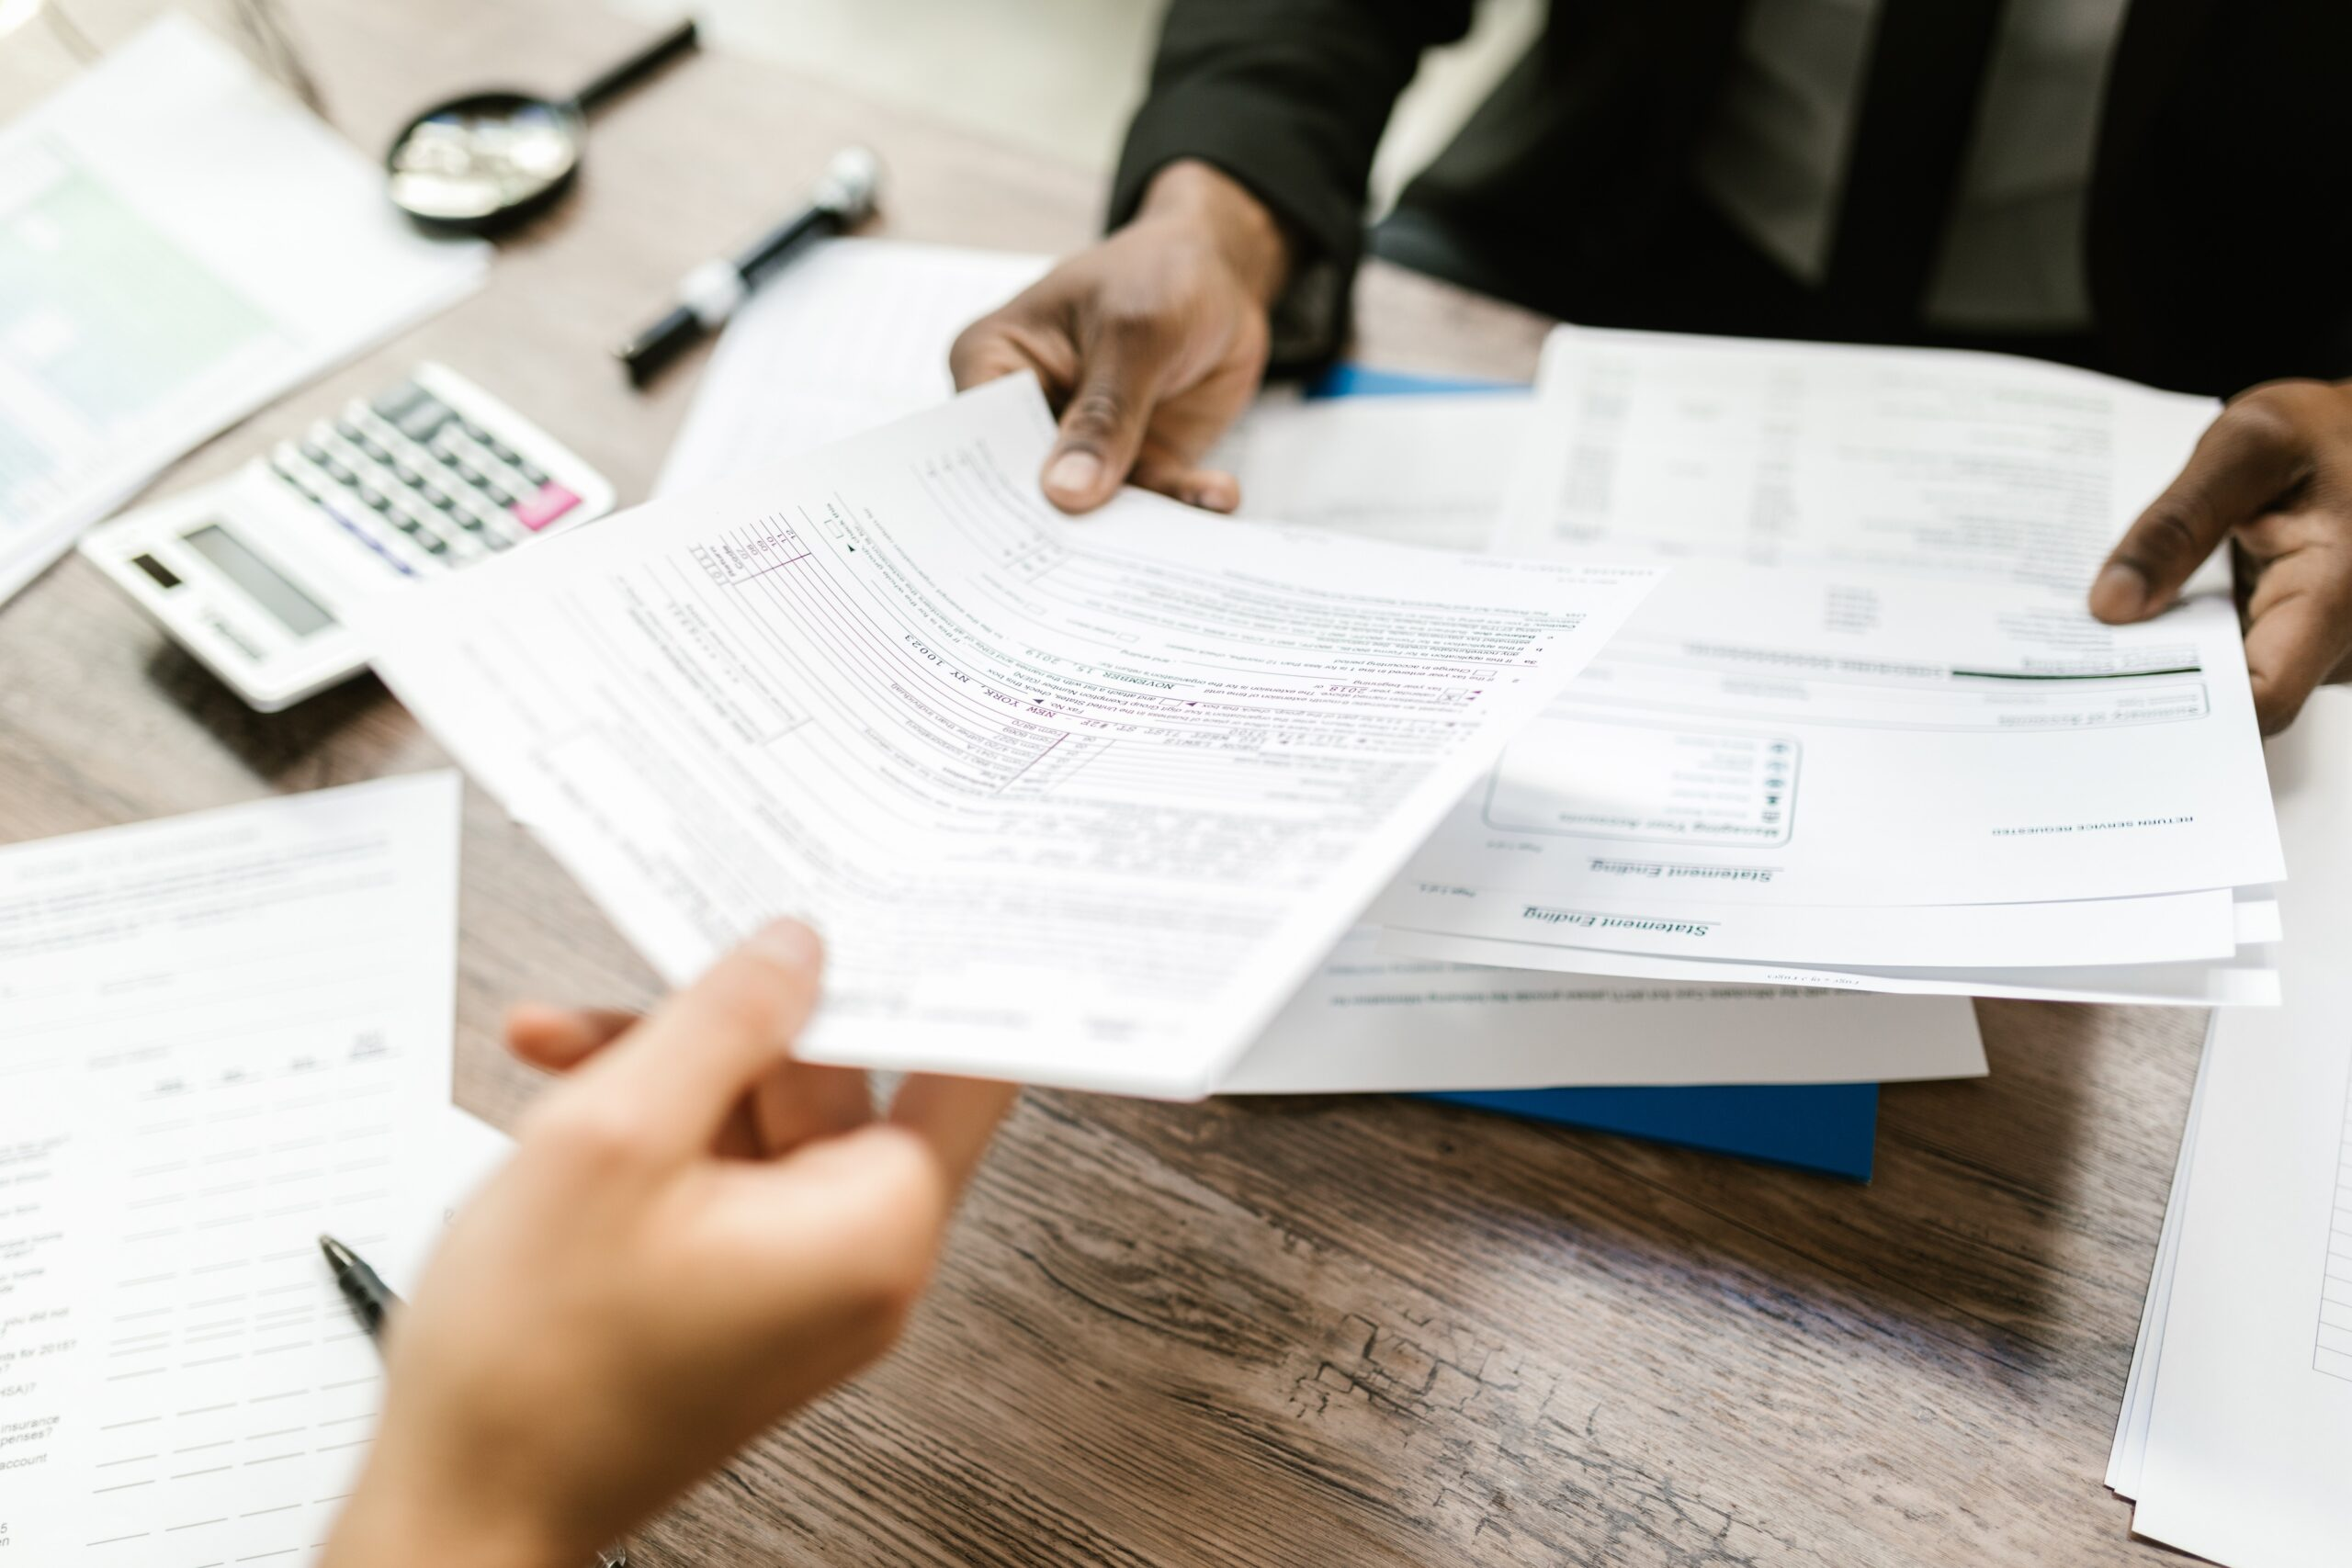 person handing another person paperwork